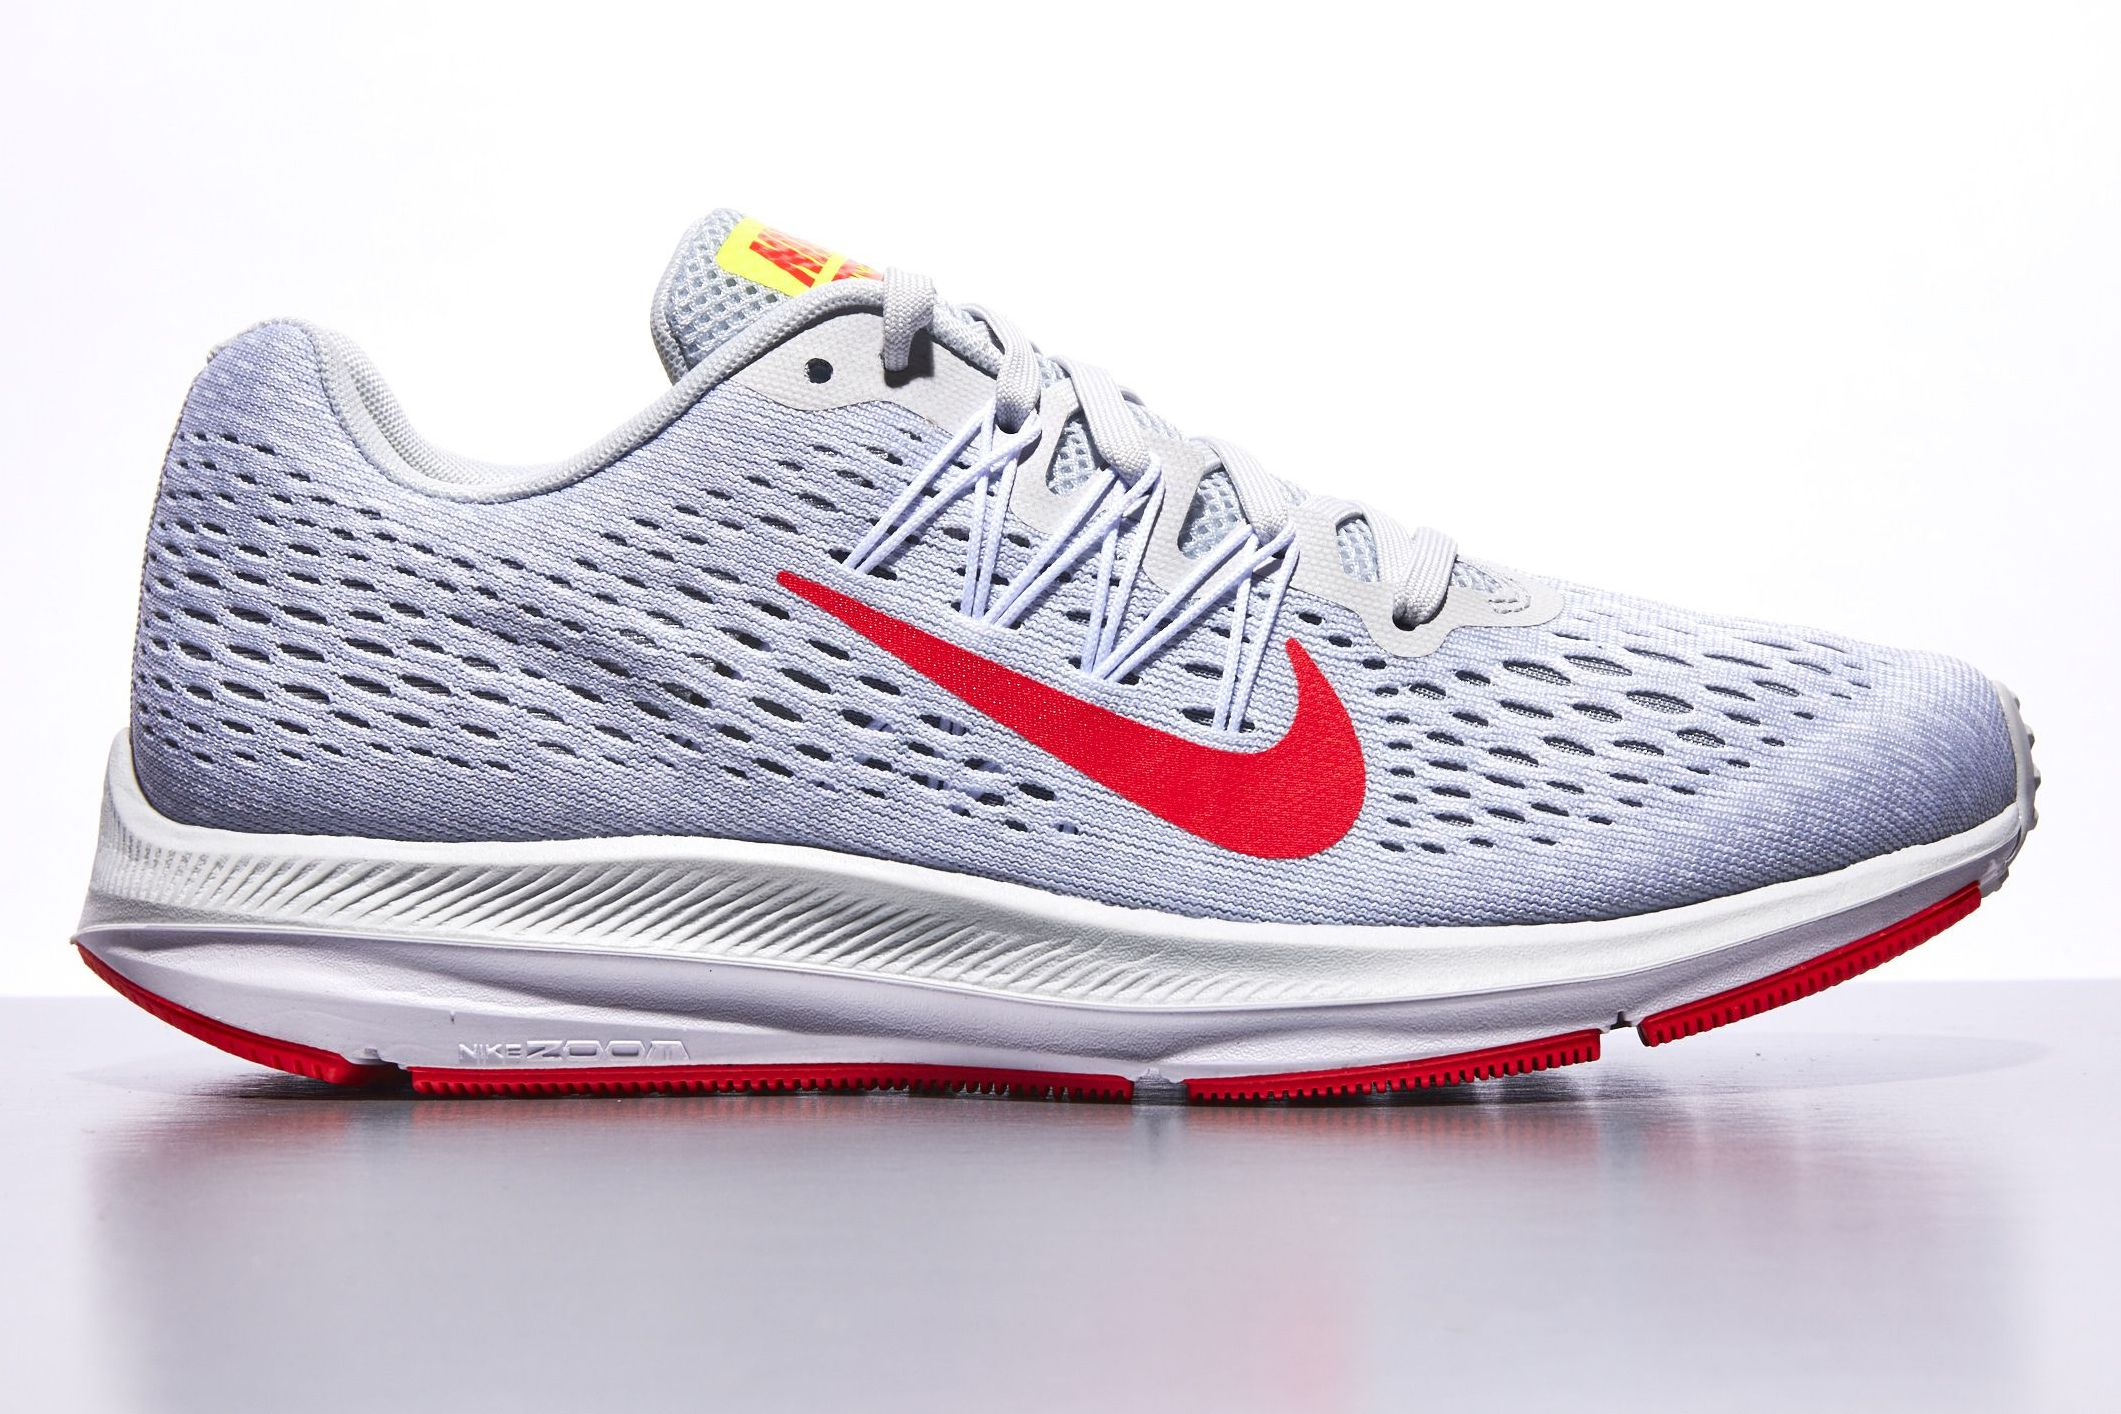 9c36583fd3c Nike Air Zoom Winflo 5 Review- Cheap Running Shoes